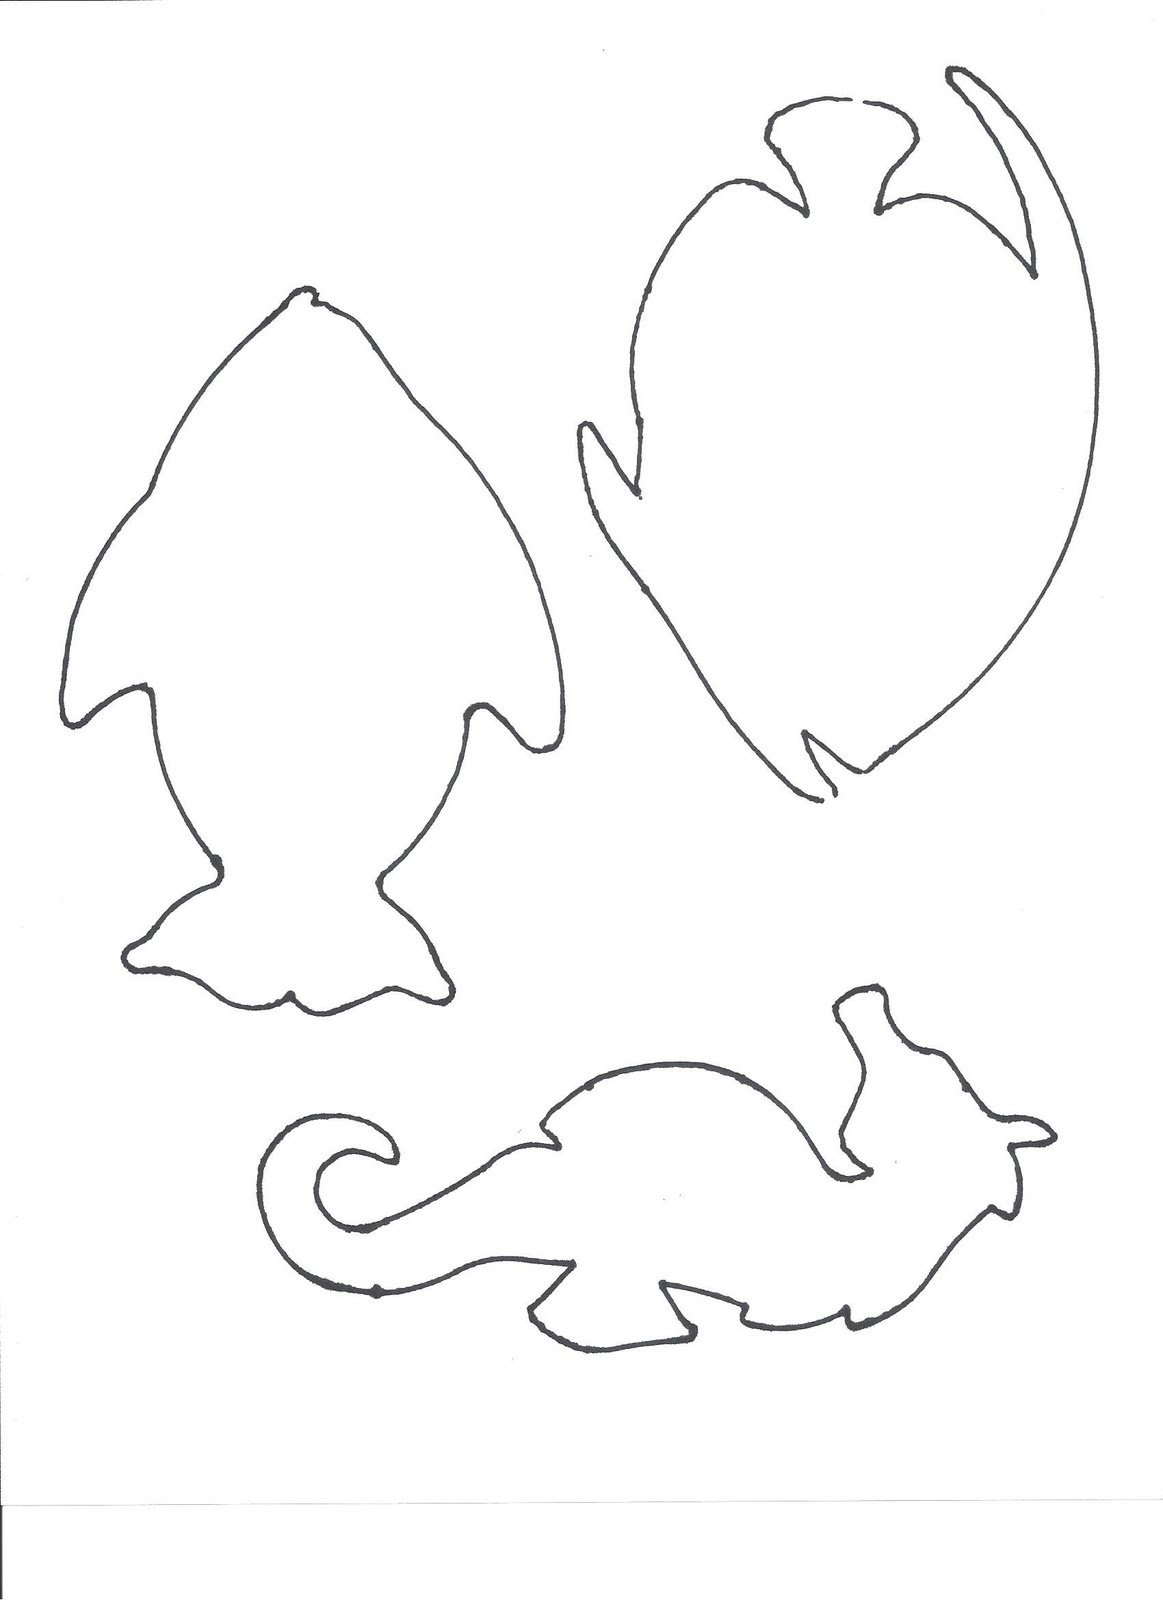 elephant template for preschool - crafts for preschoolers templates